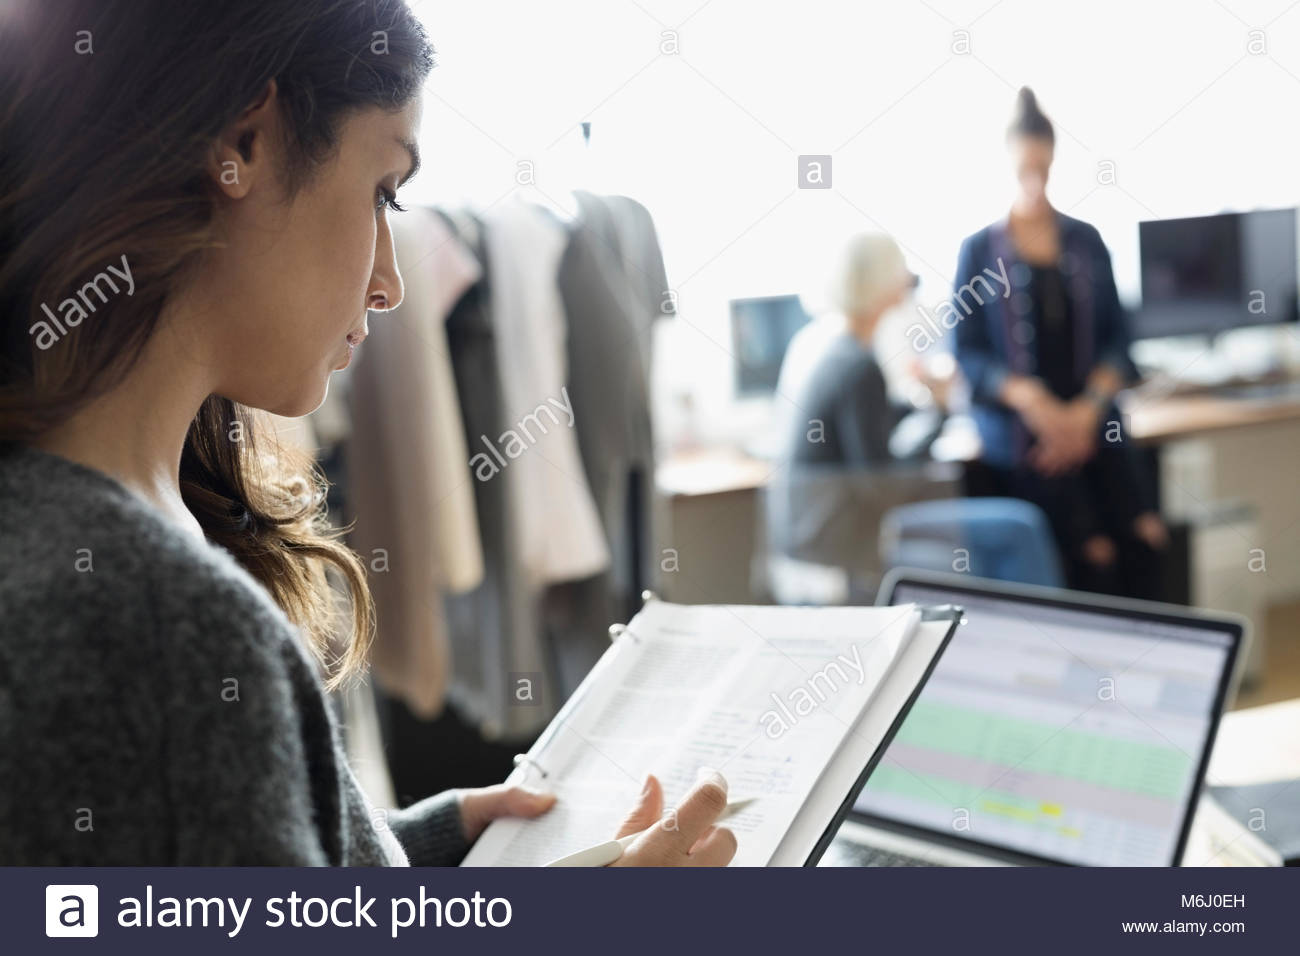 Female production manager reviewing schedule in office - Stock Image